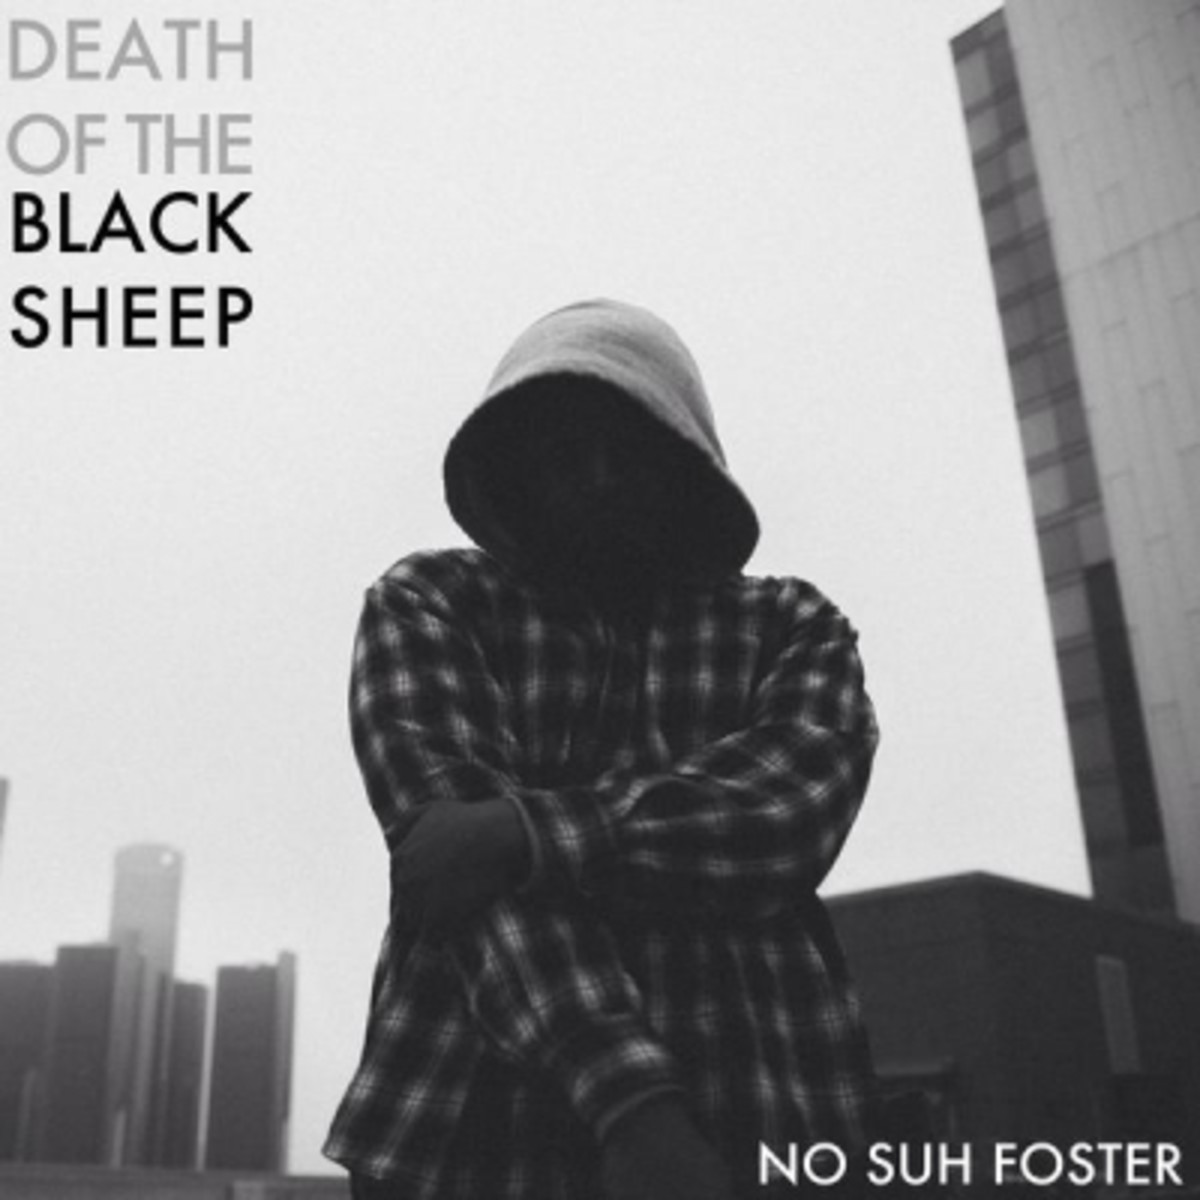 no-suh-foster-death-of-the-black-sheep.jpg